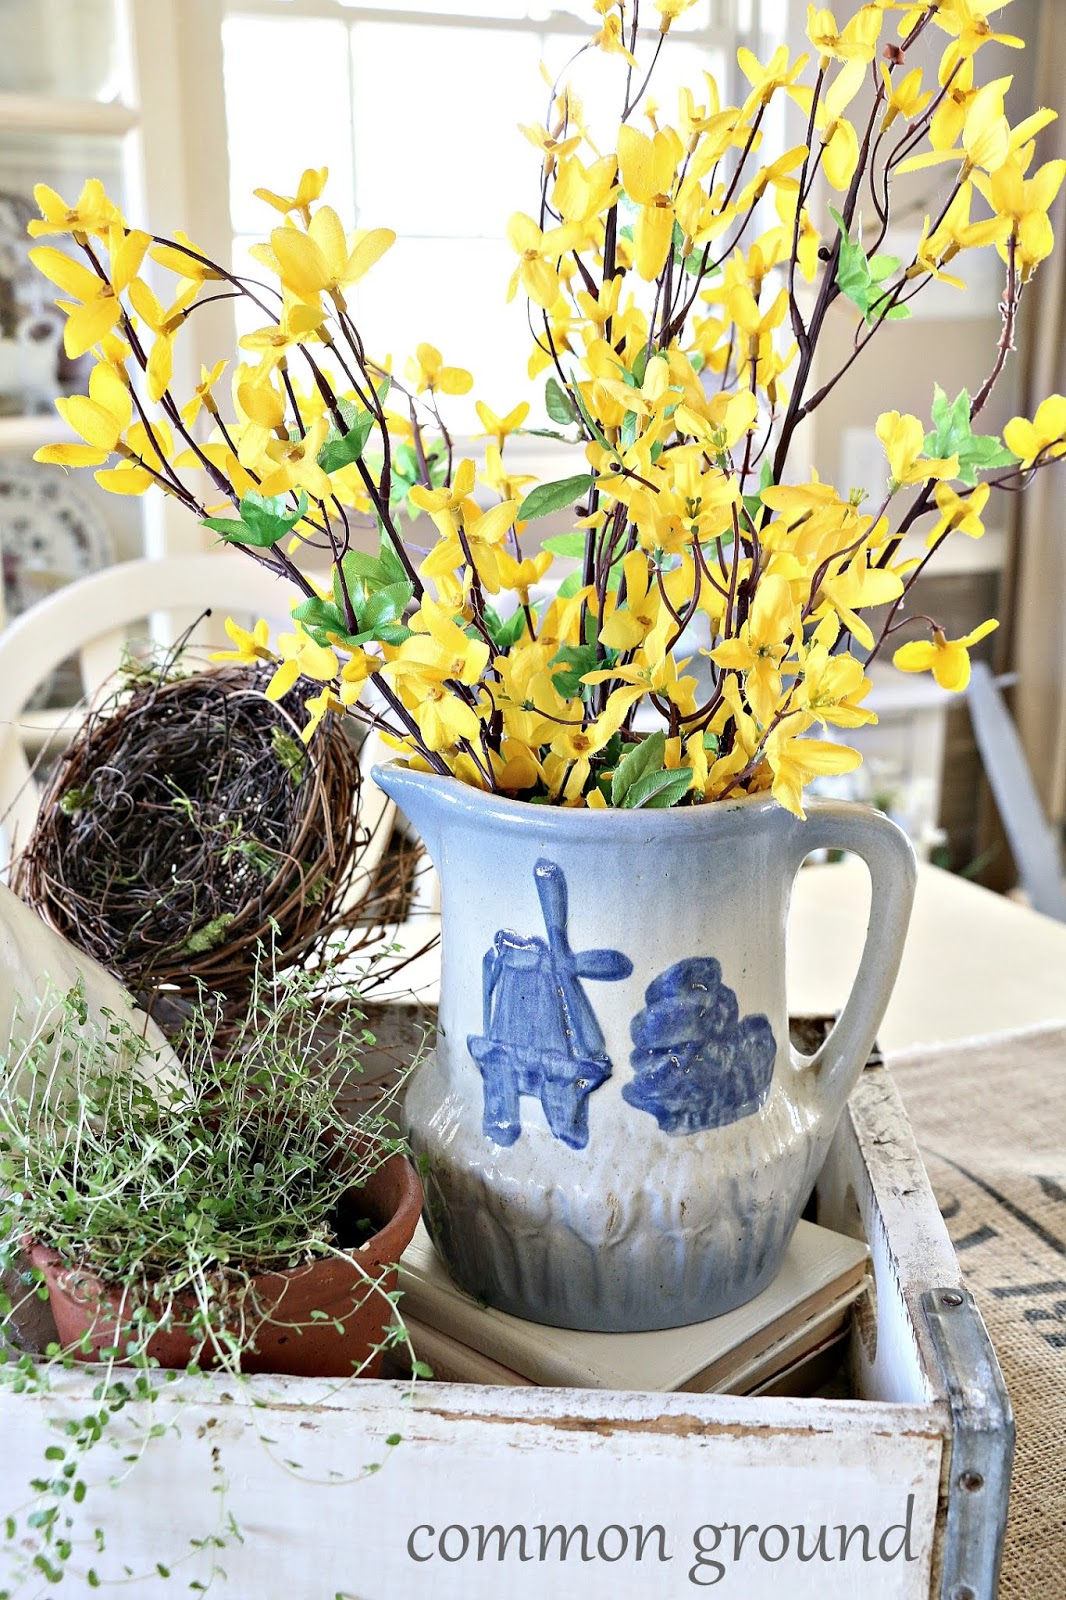 Common Ground Welcoming Spring With An Antique Crockery Pitcher